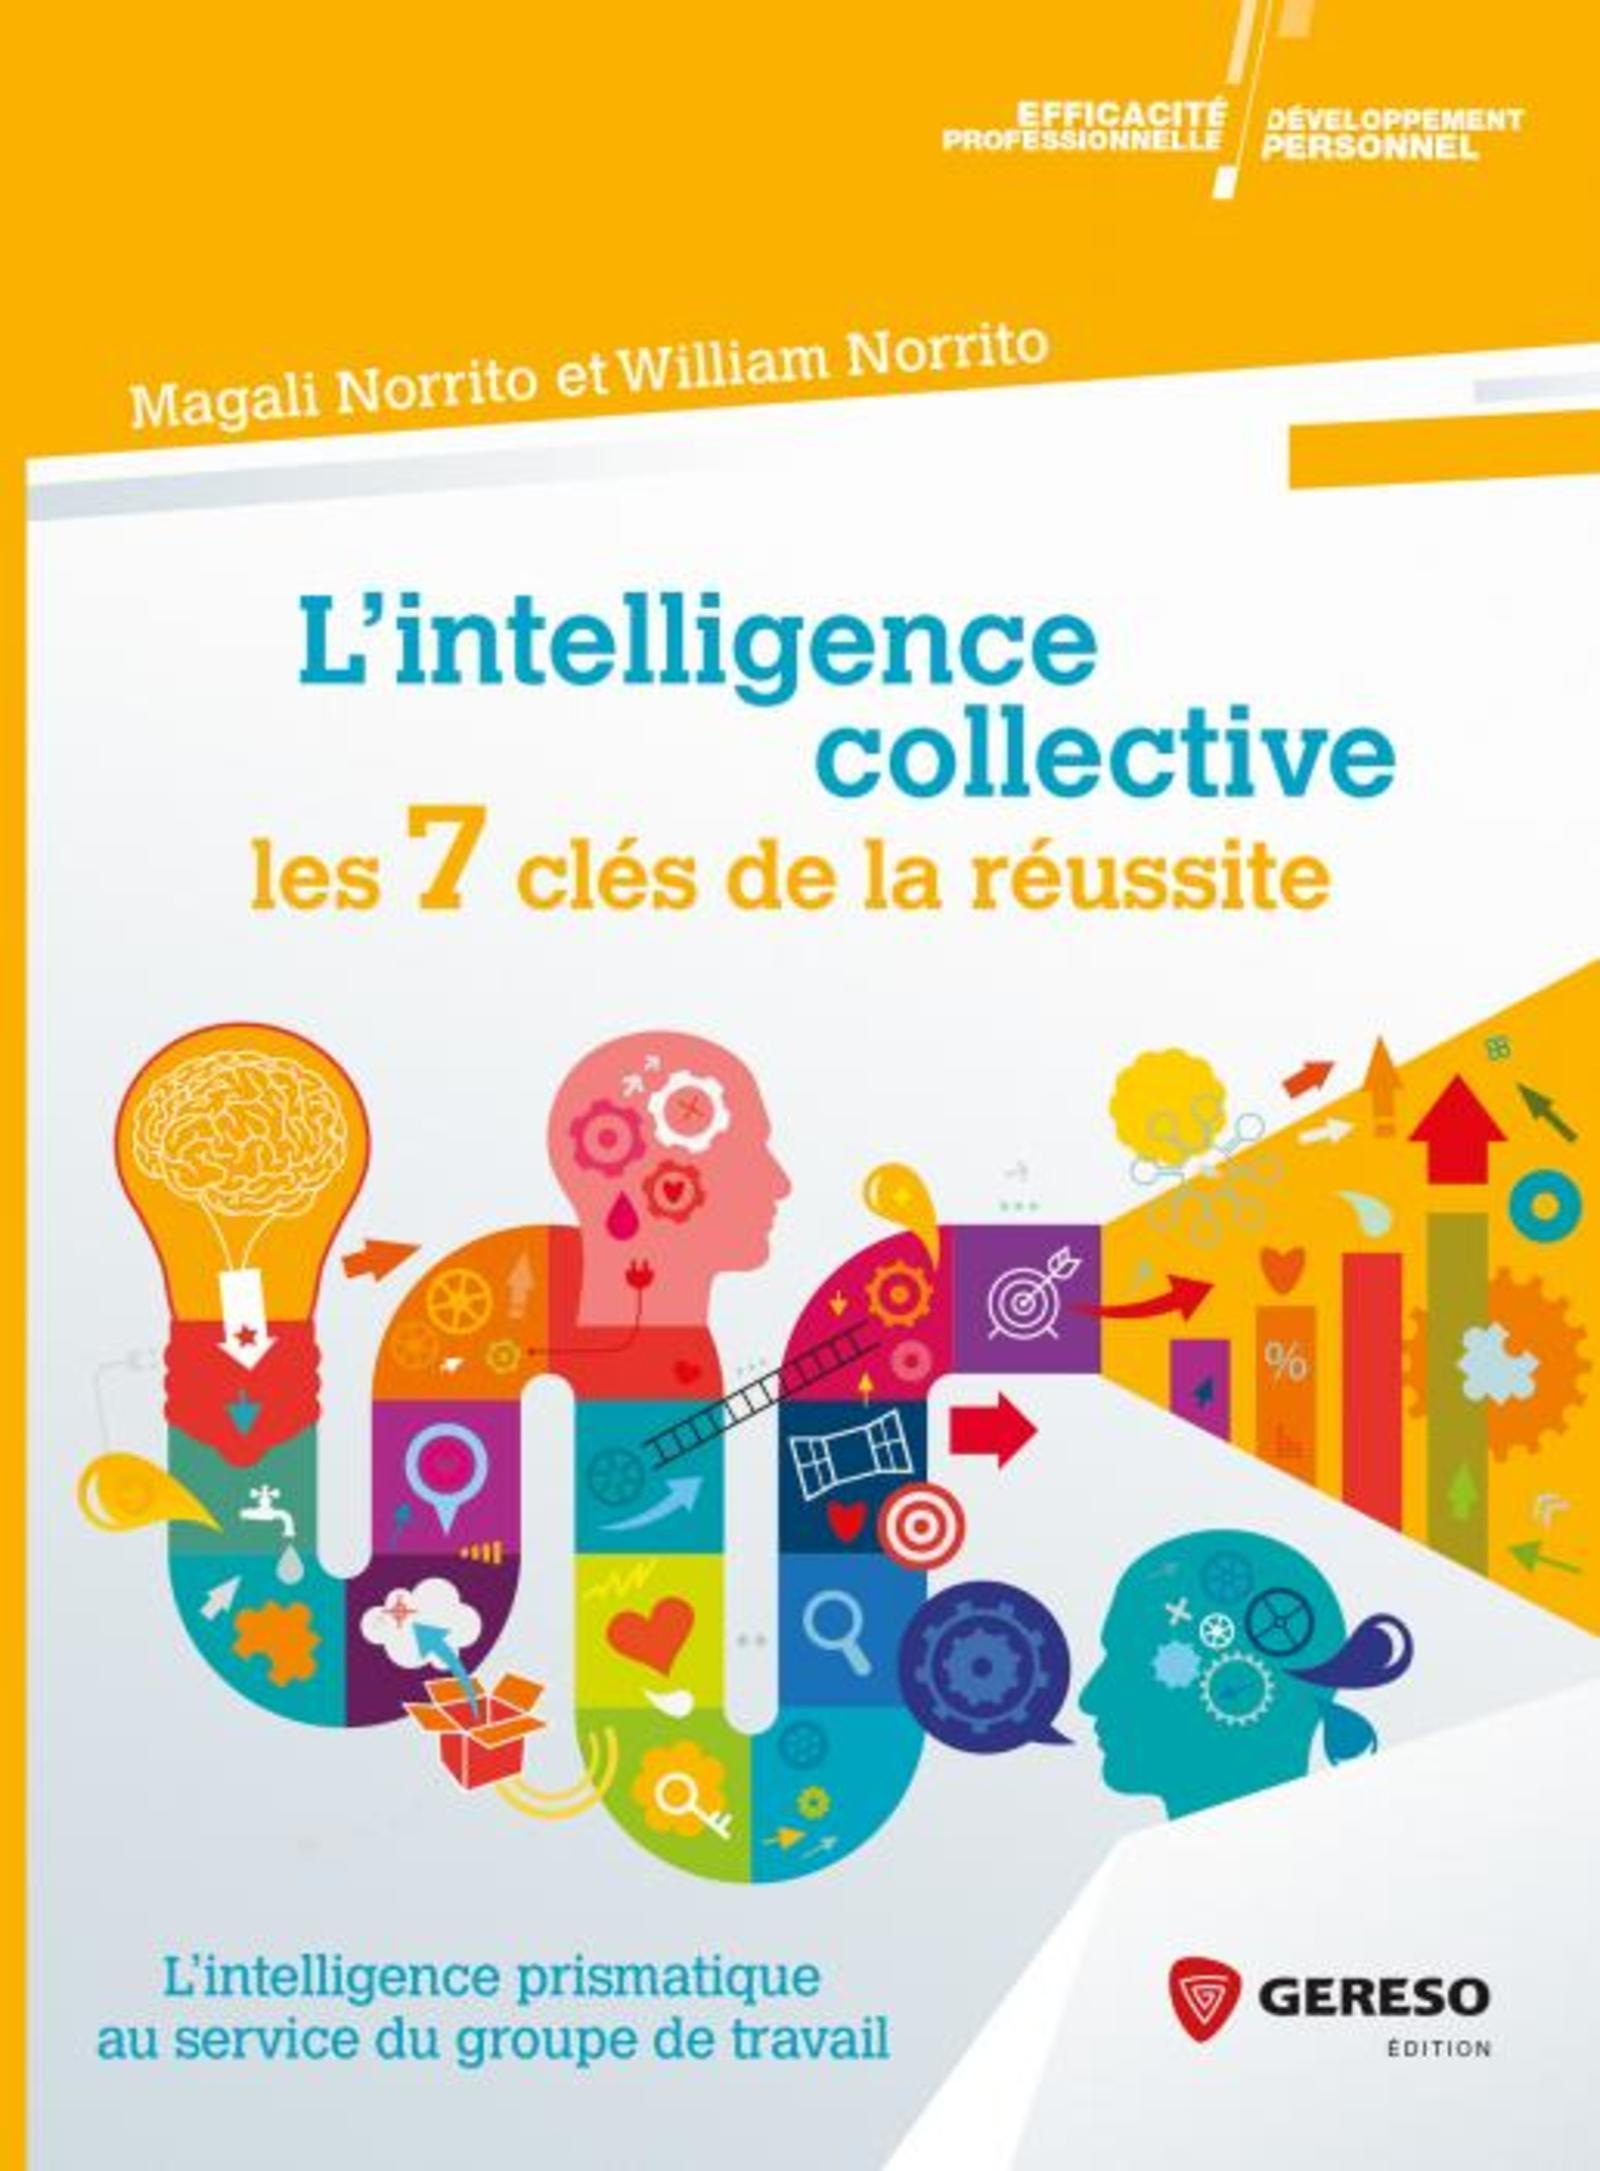 L'INTELLIGENCE COLLECTIVE : LES 7 CLES DE LA REUSSITE - L'INTELLIGENCE PRISMATIQUE AU SERVICE DU GRO